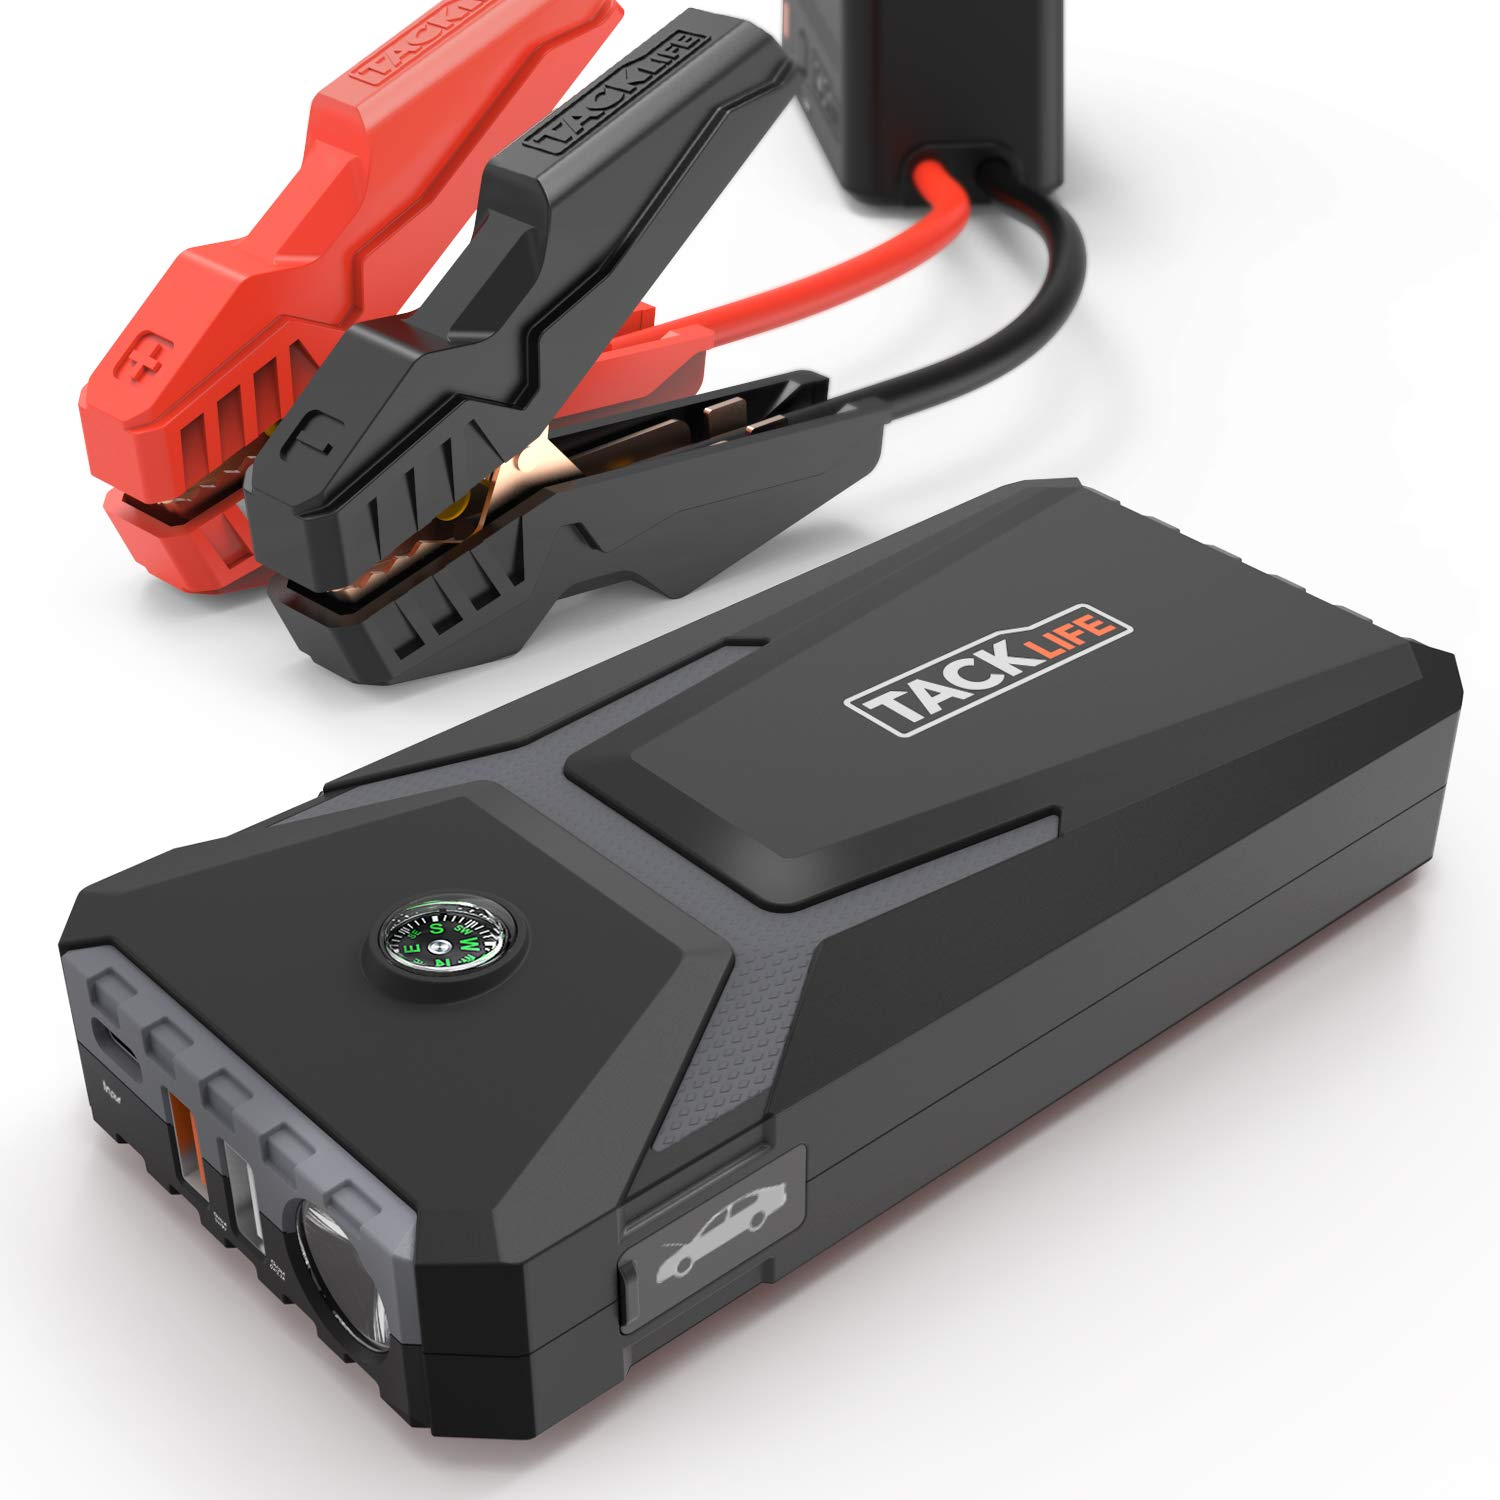 TACKLIFE T8 MIX Car Jump Starter - 400A Peak Current, 12V Auto Battery Booster, 12000mAh Power Pack with Type-C Input, Dual Charging Ports and Compass